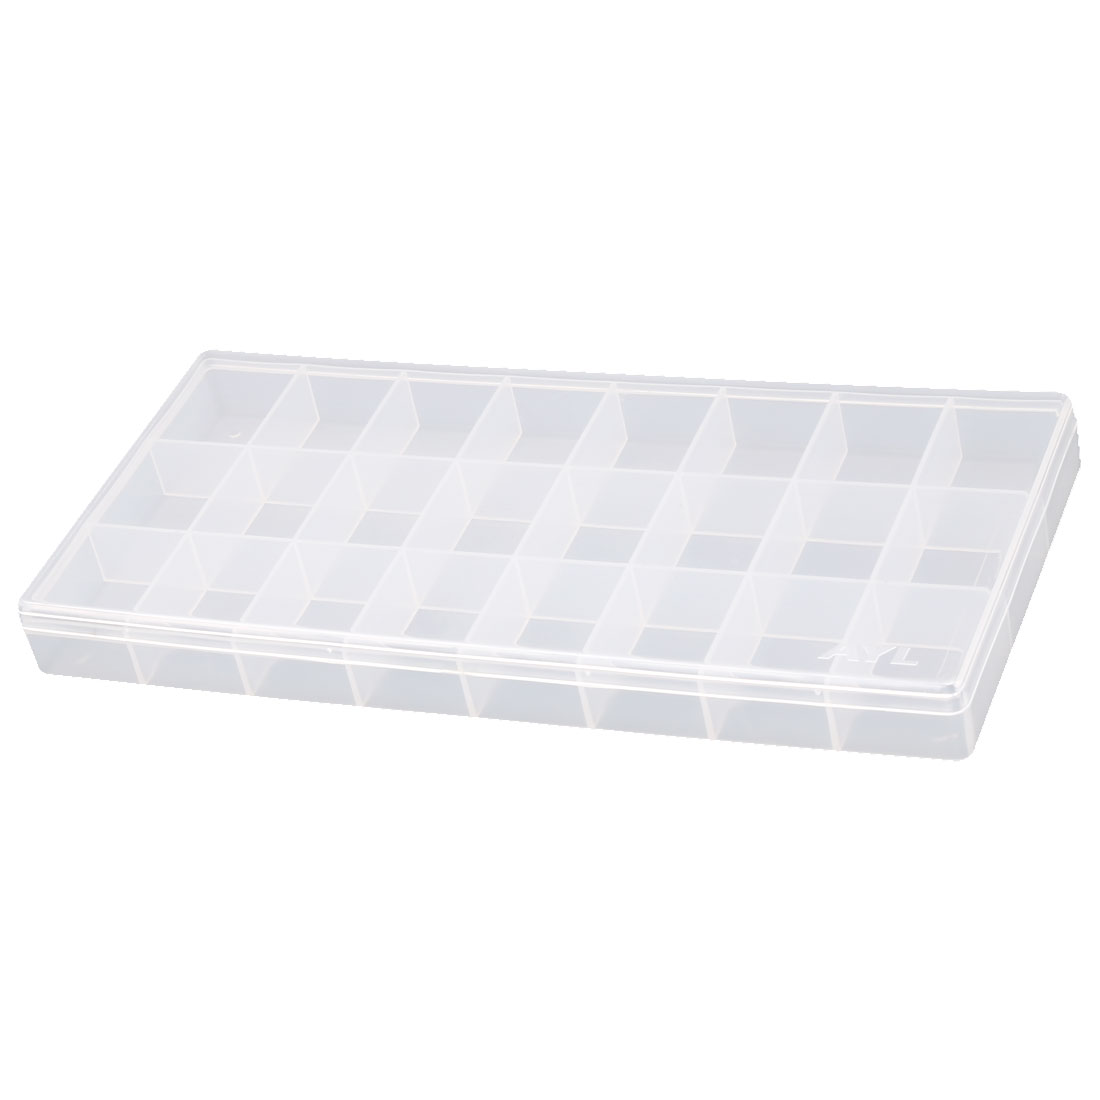 Plastic Rectangular Shaped 24 Compartment Watercolor Mixing Paint Palette Case Clear